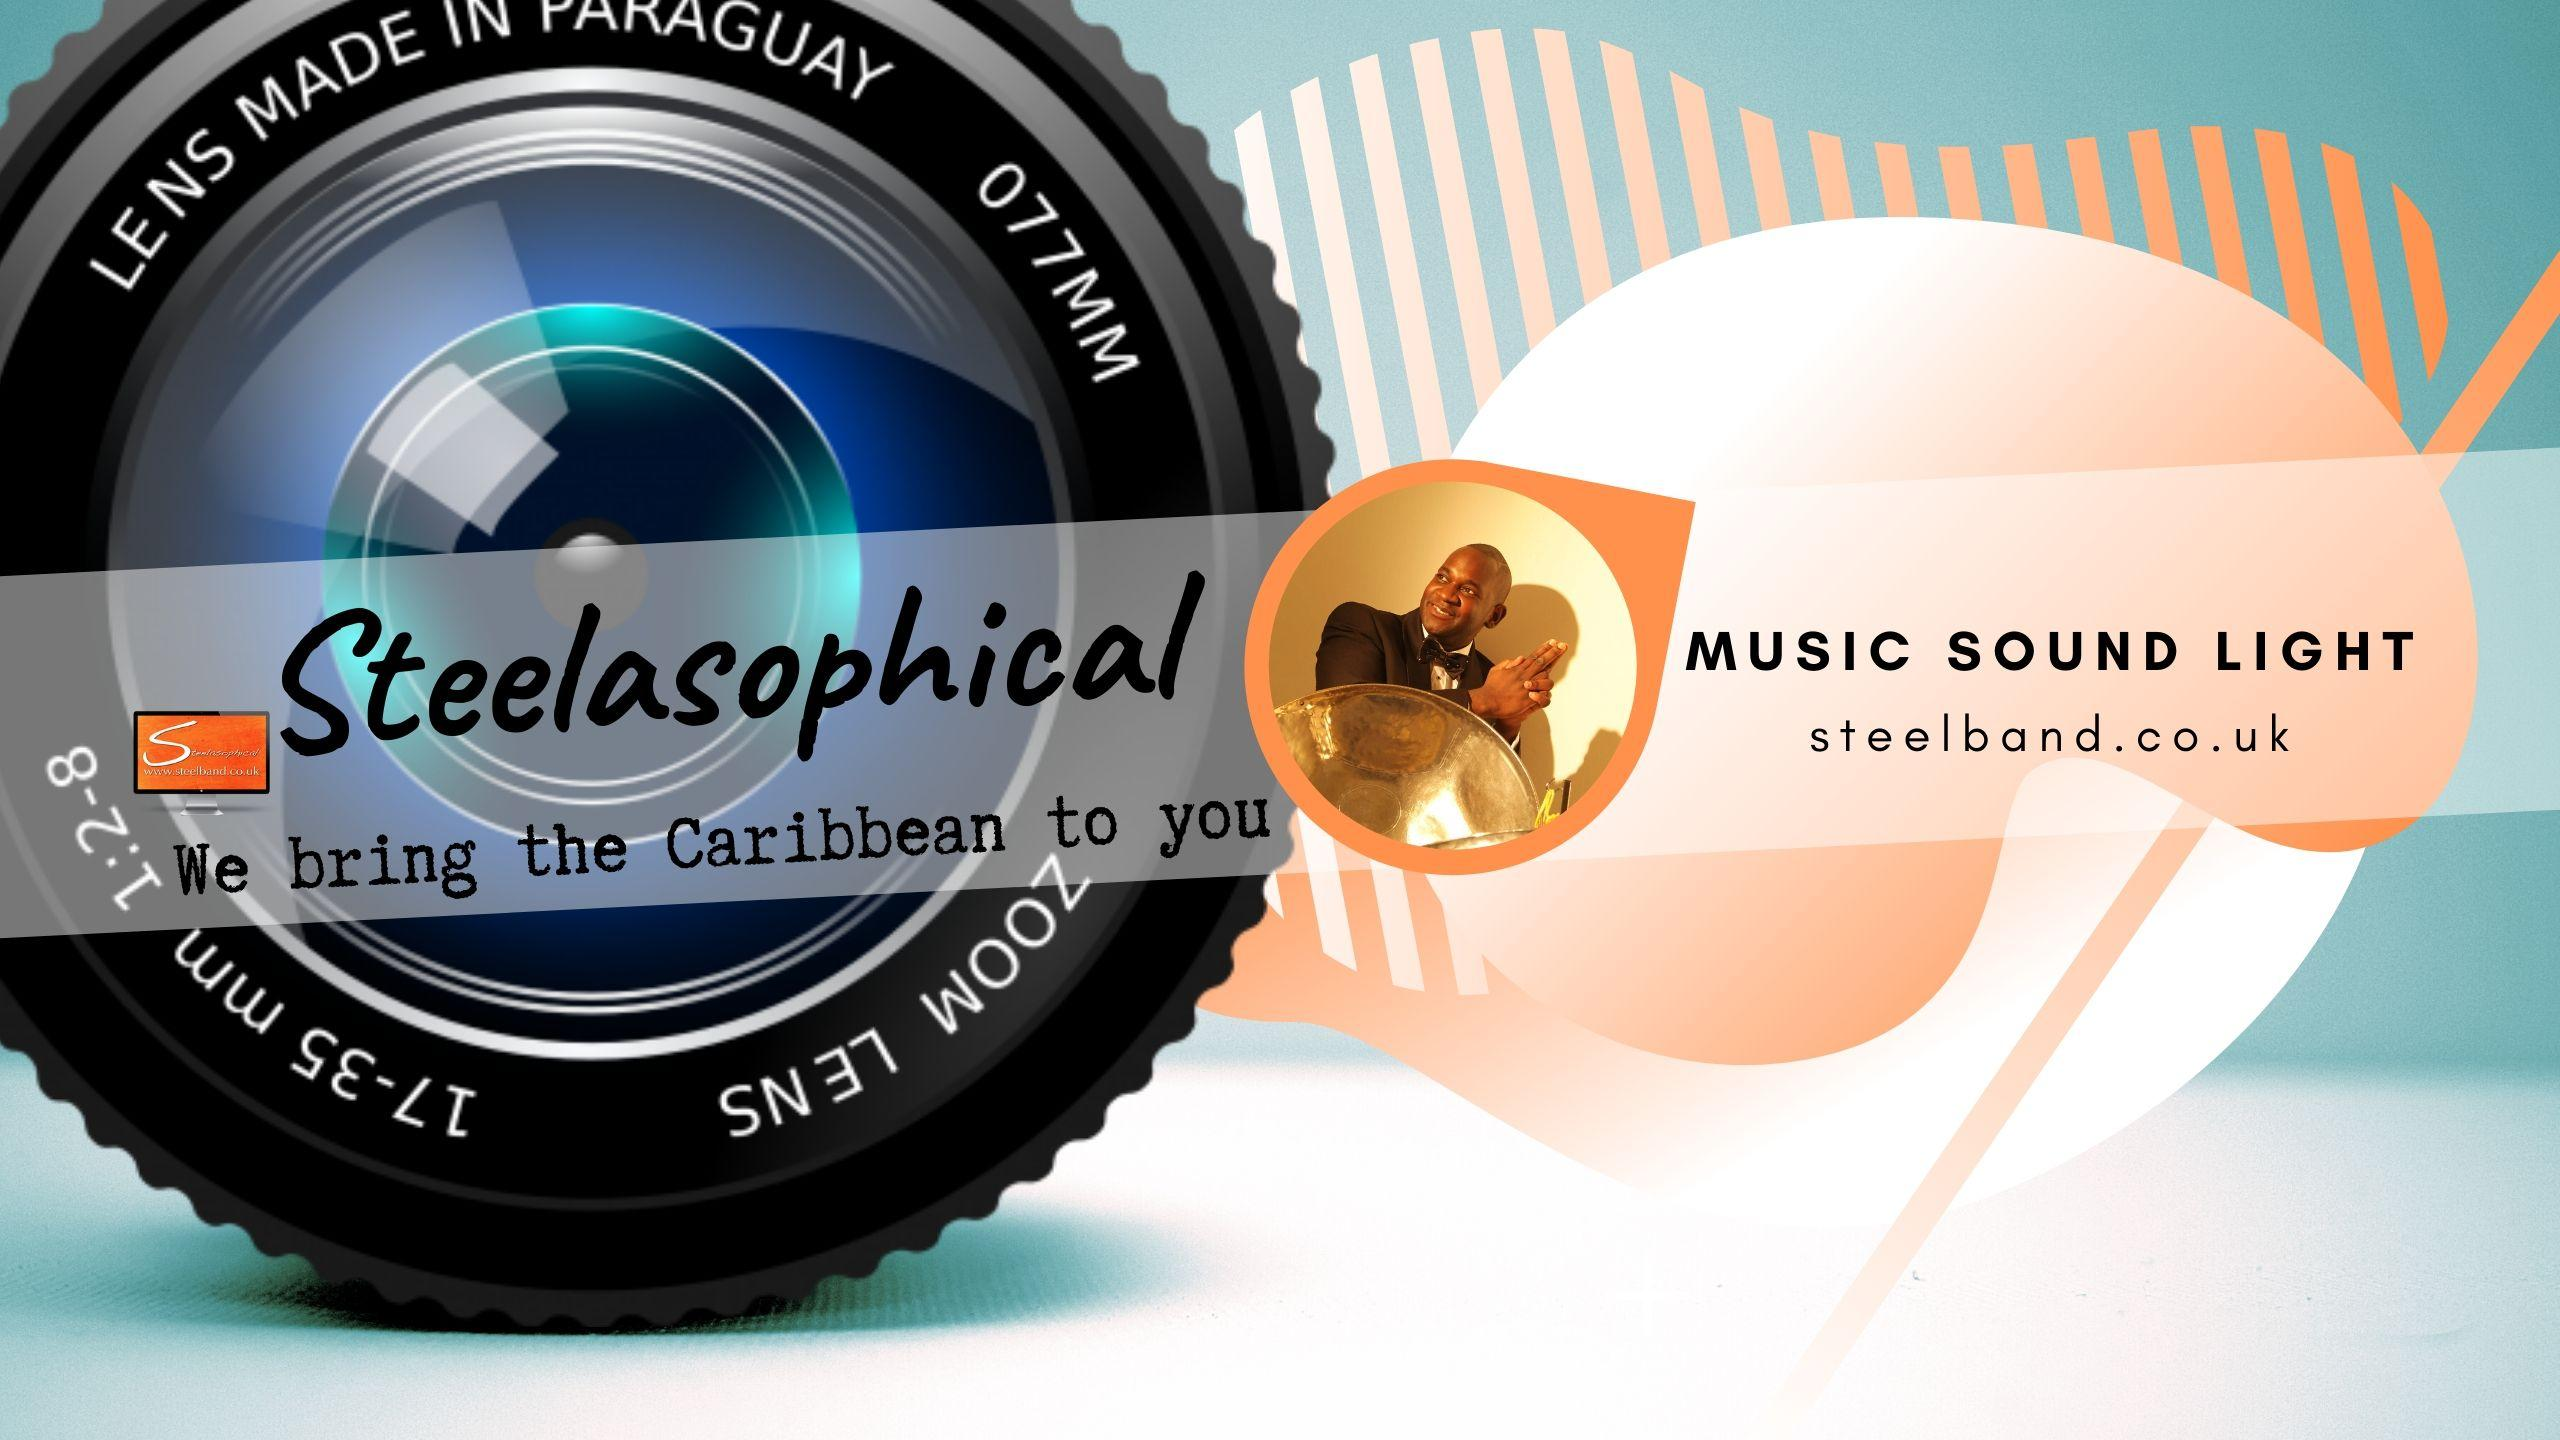 Steelasophical SteelBand for Hire UK steelpans Steeldrums Caribbean Music